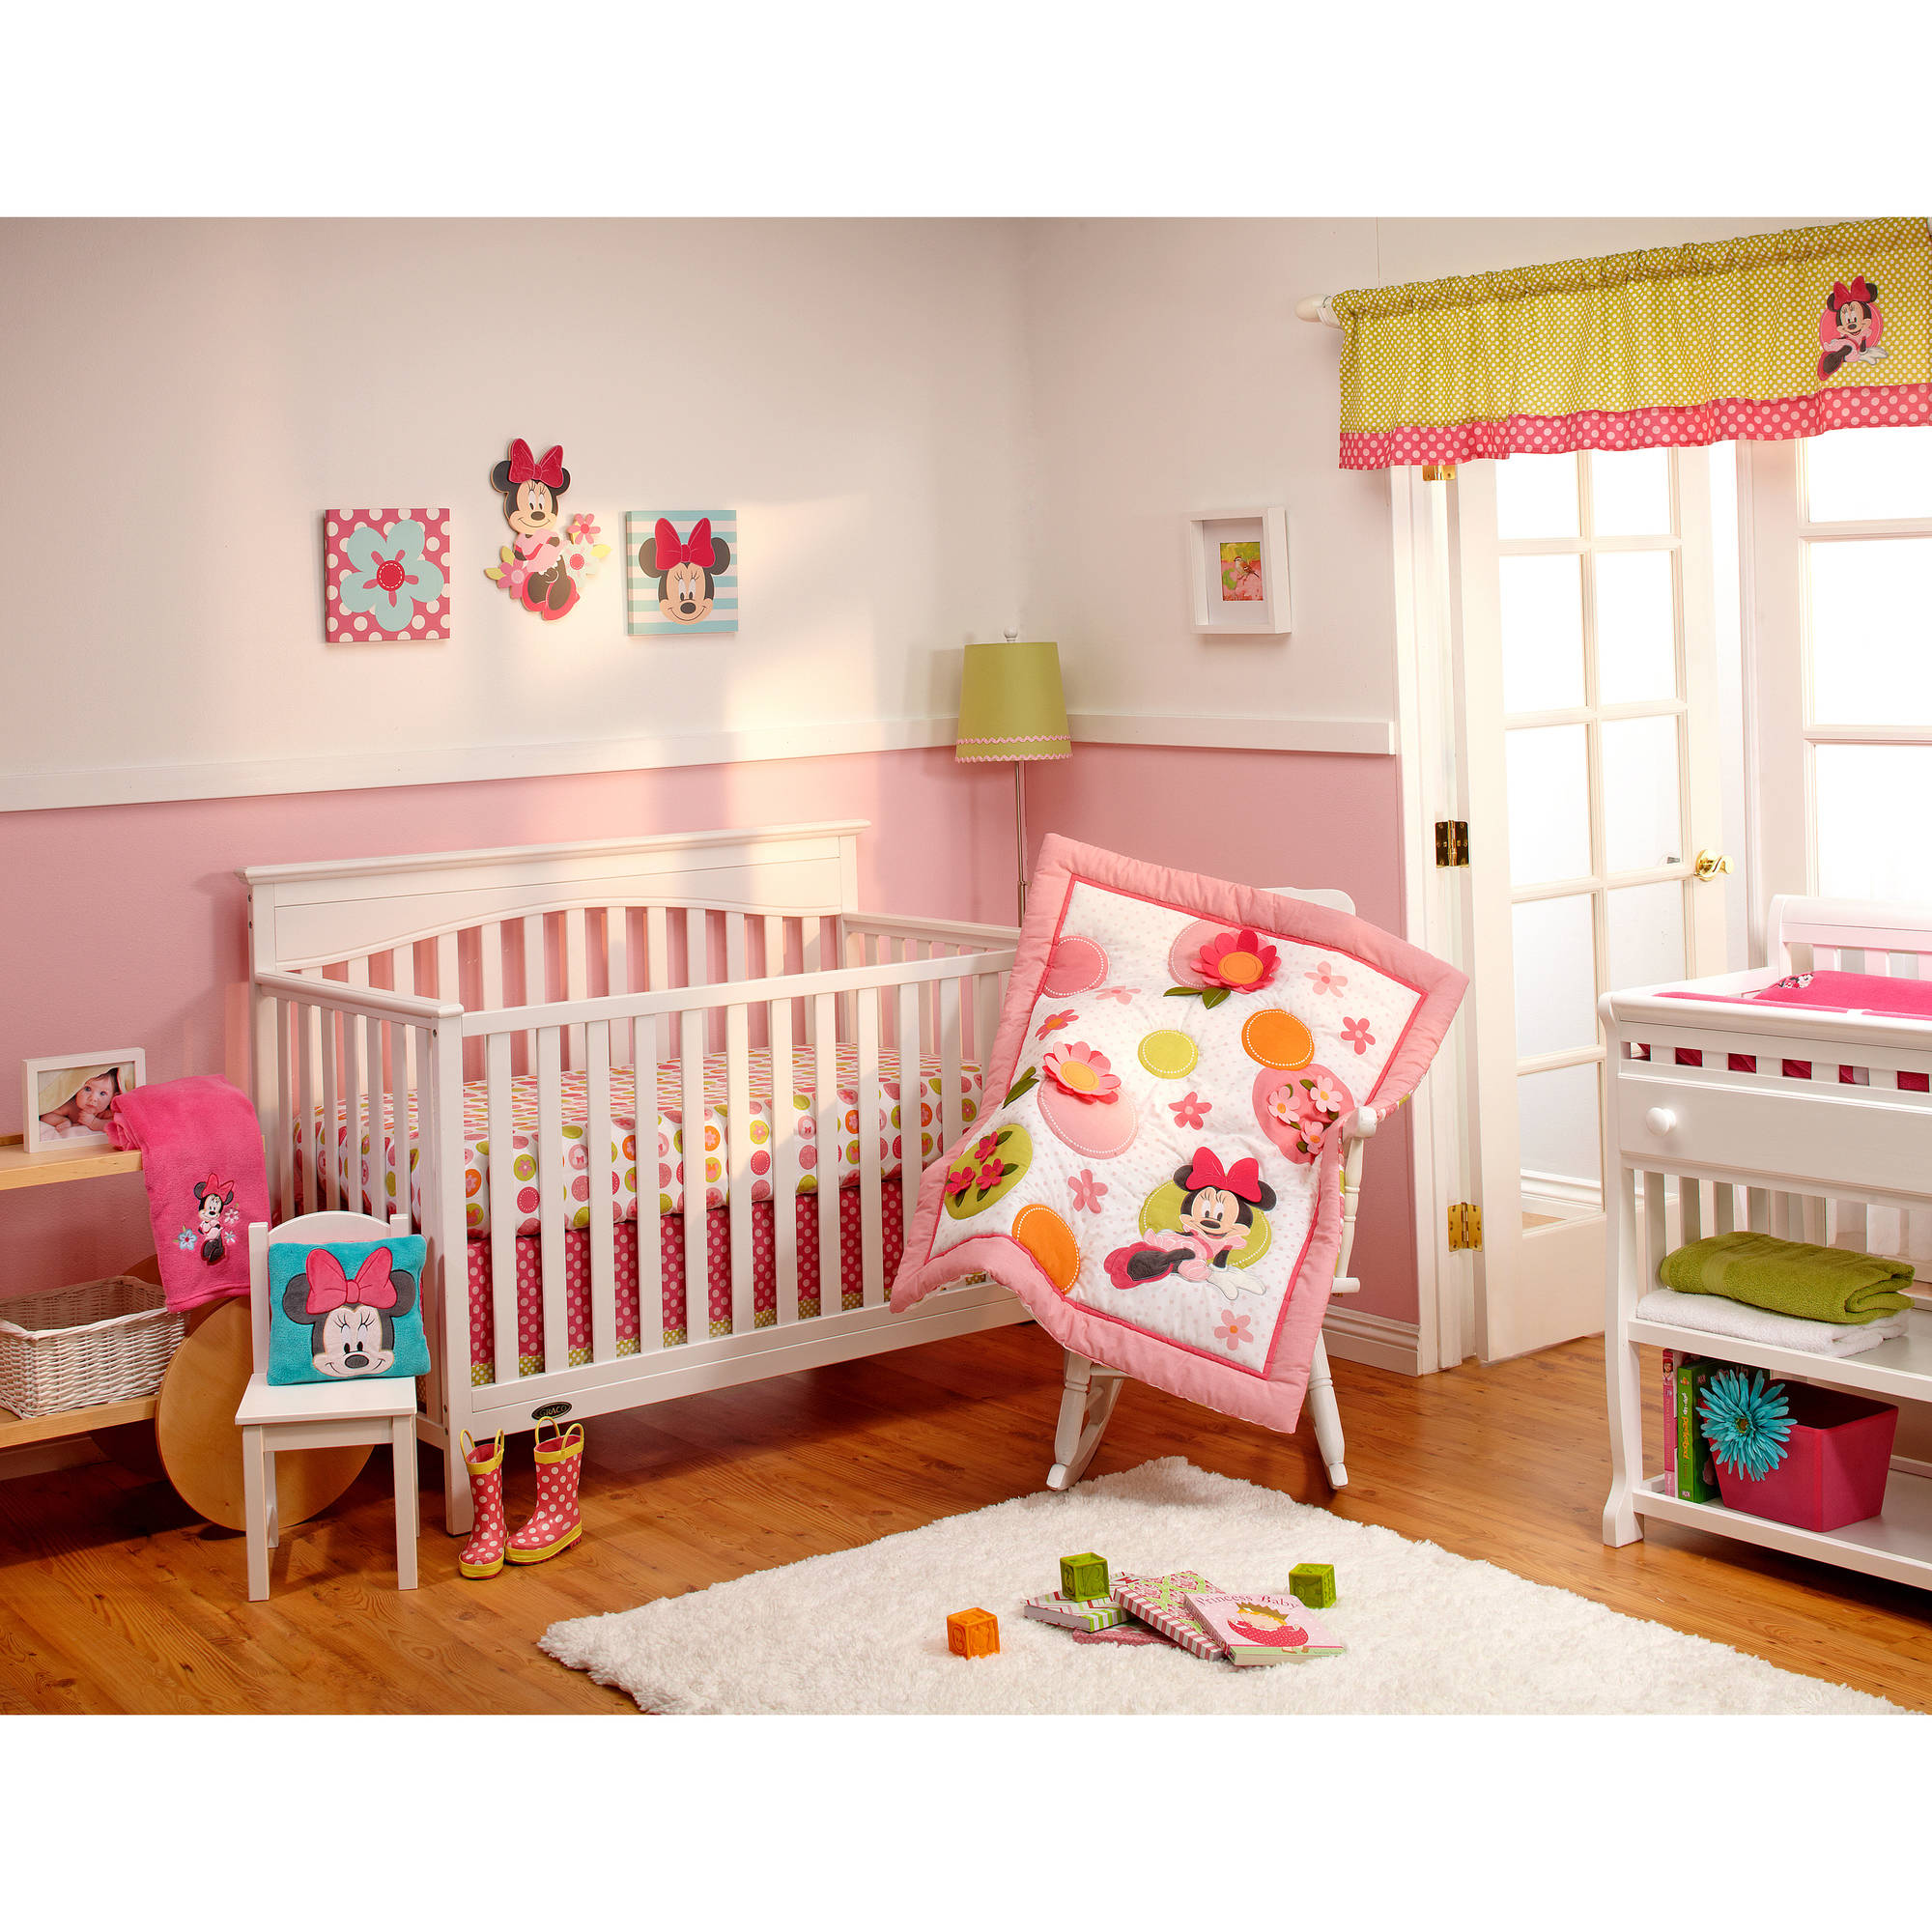 Disney Baby Bedding Minnie Mouse's Petal Perfect 4-Piece Deluxe Crib Bedding Set